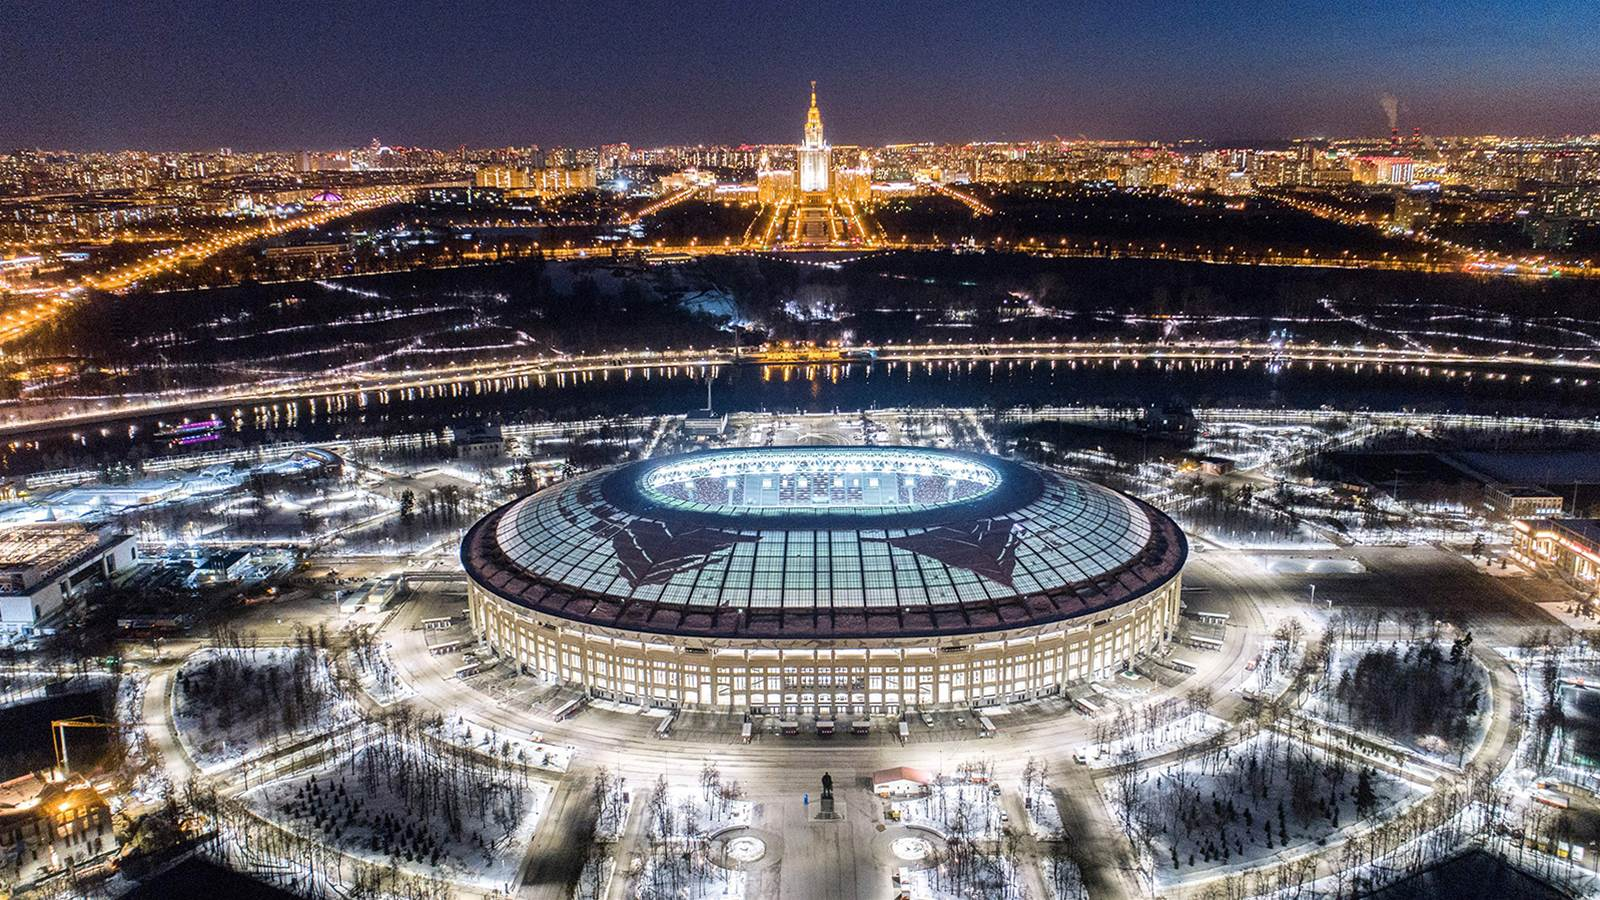 Over 400,000 use Volgograd's public transport on England's opening night